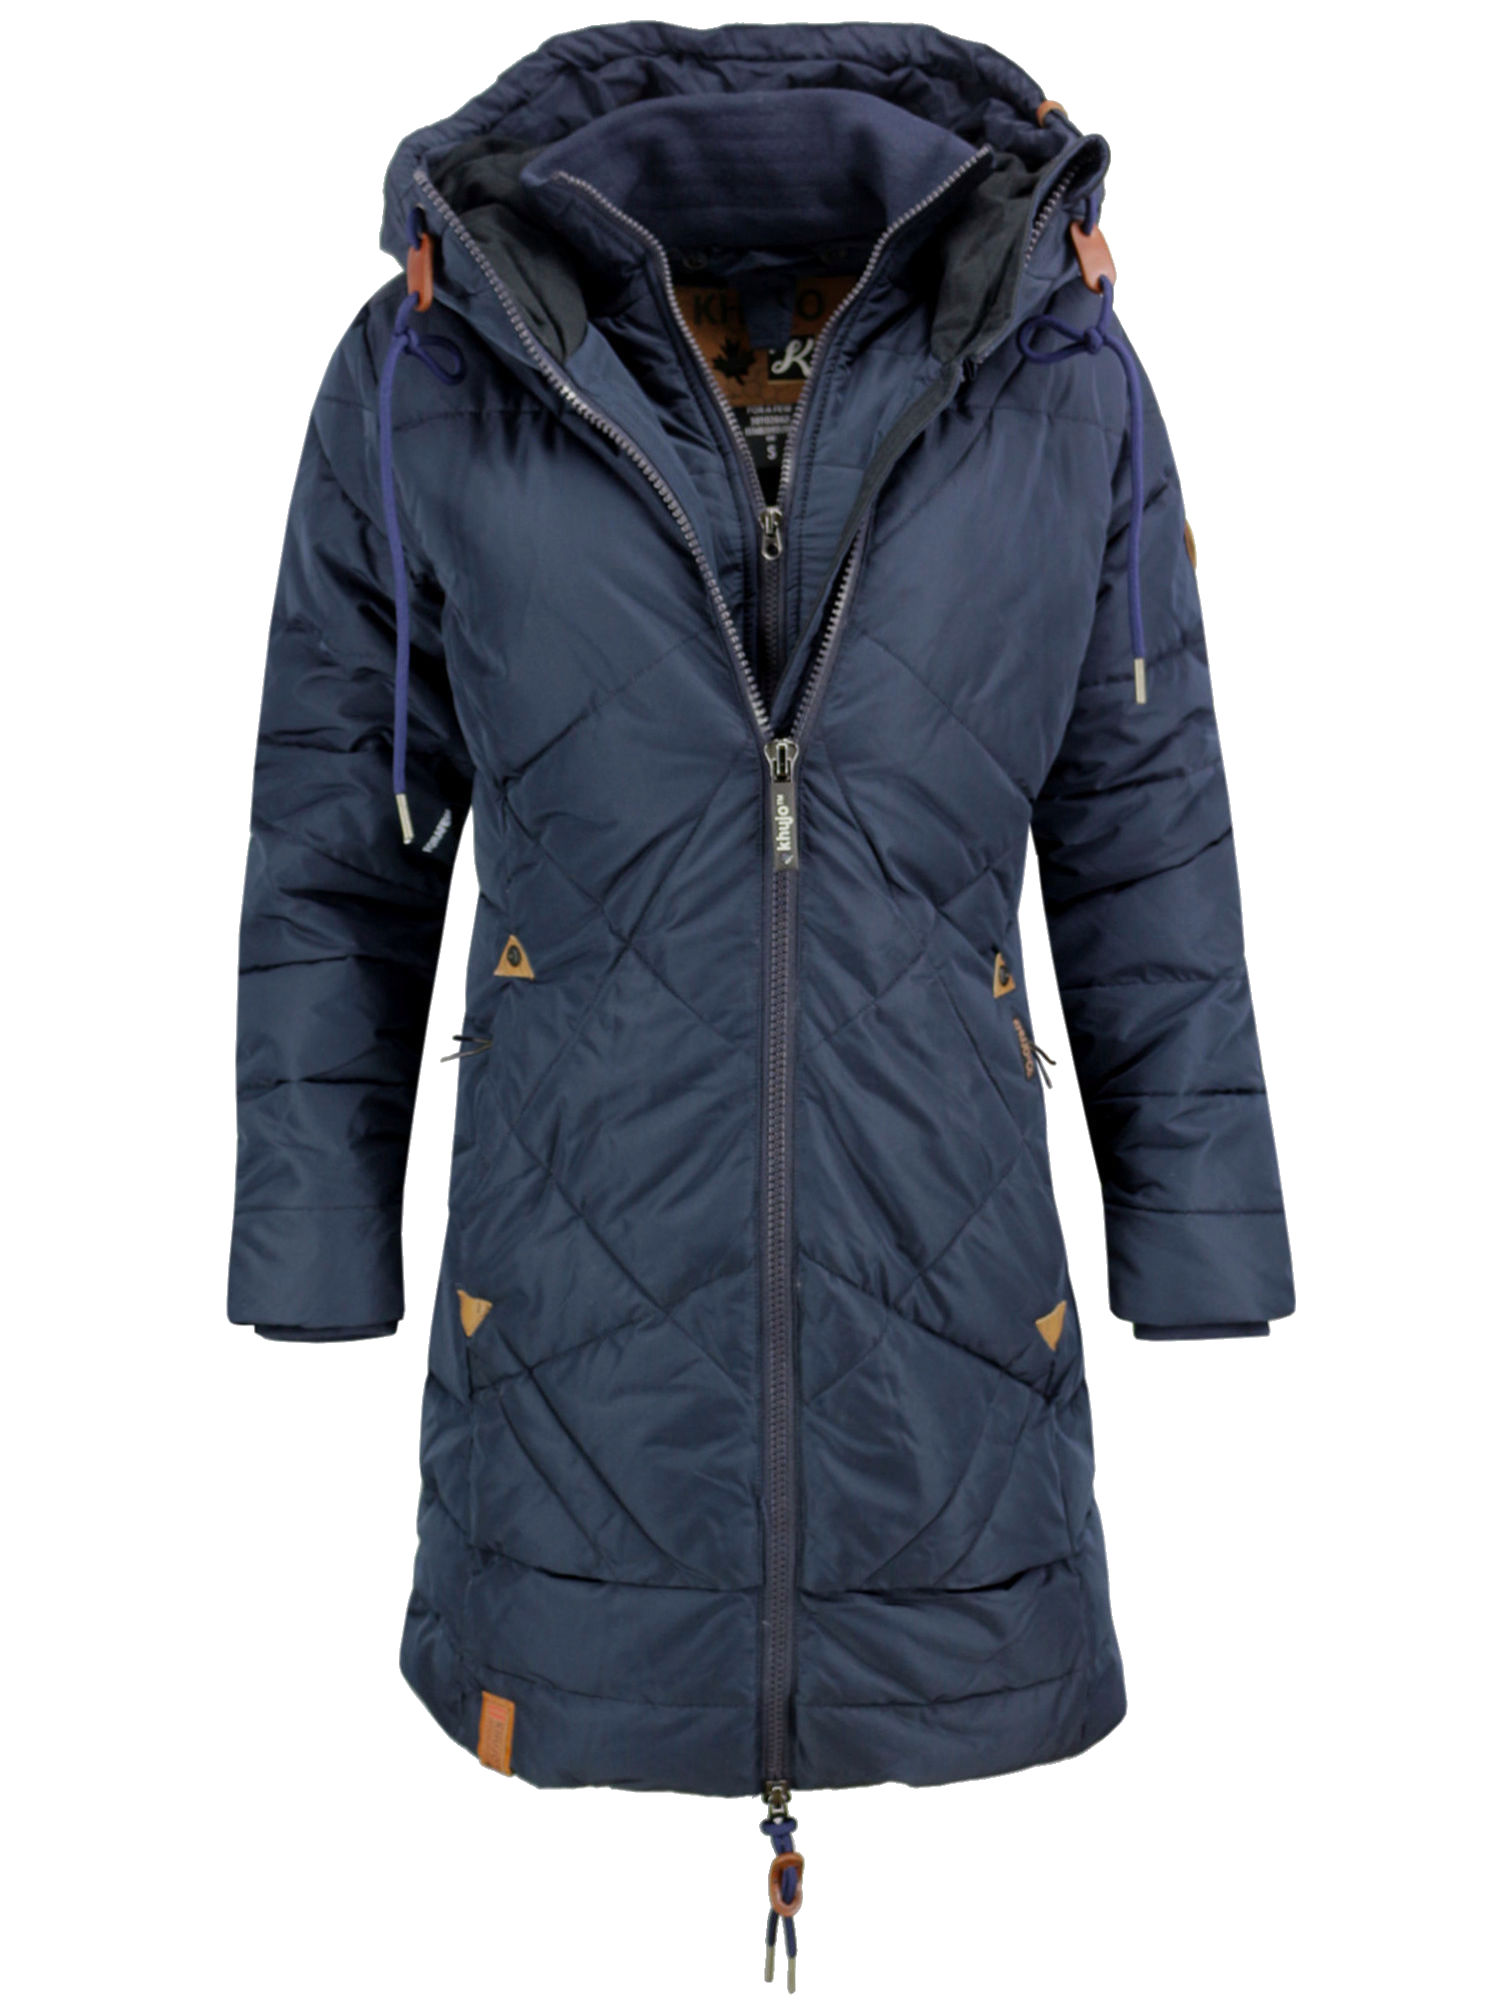 sports shoes 3c6a5 d1be3 KHUJO Damen Wintermantel Steppmantel Mantel Jacke ANNABELL Winter Parka  Kapuze blau